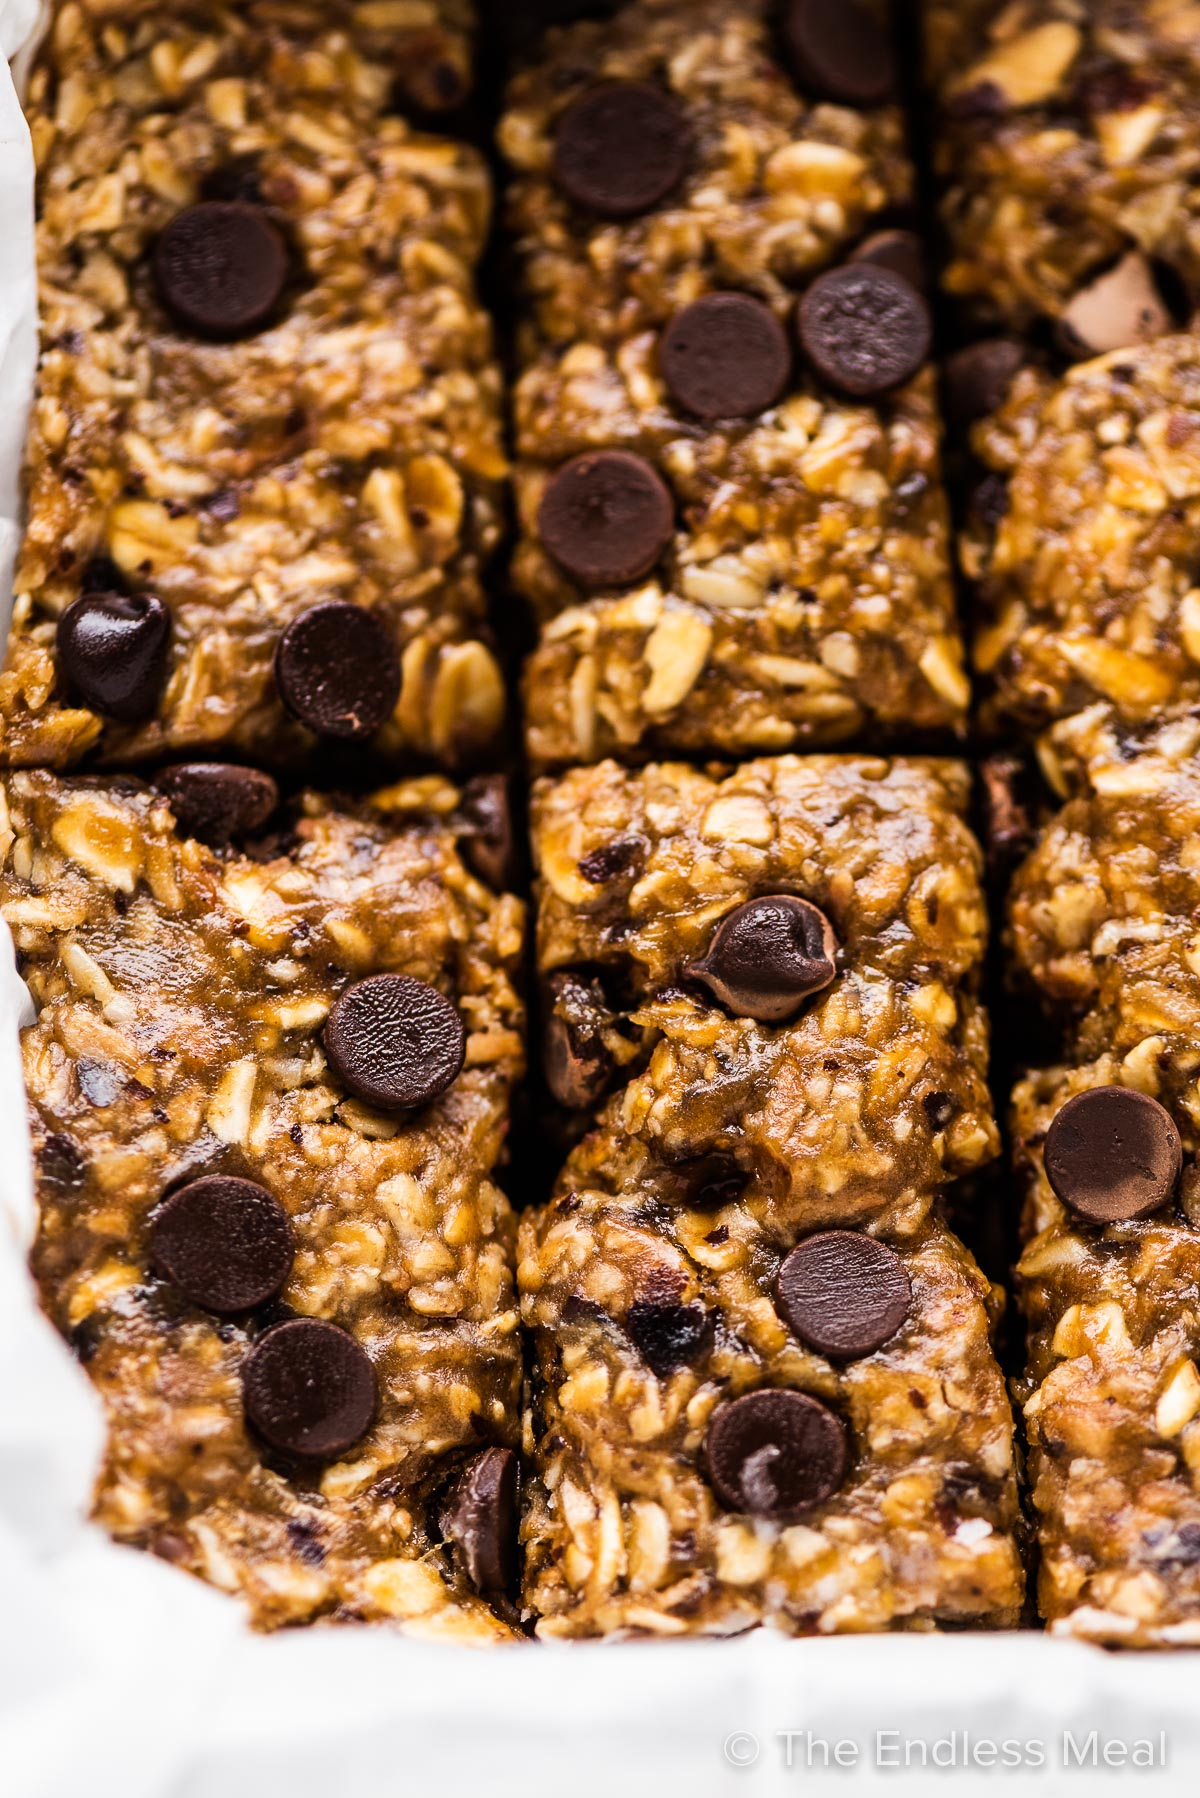 Homemade nut free granola bars in a pan.